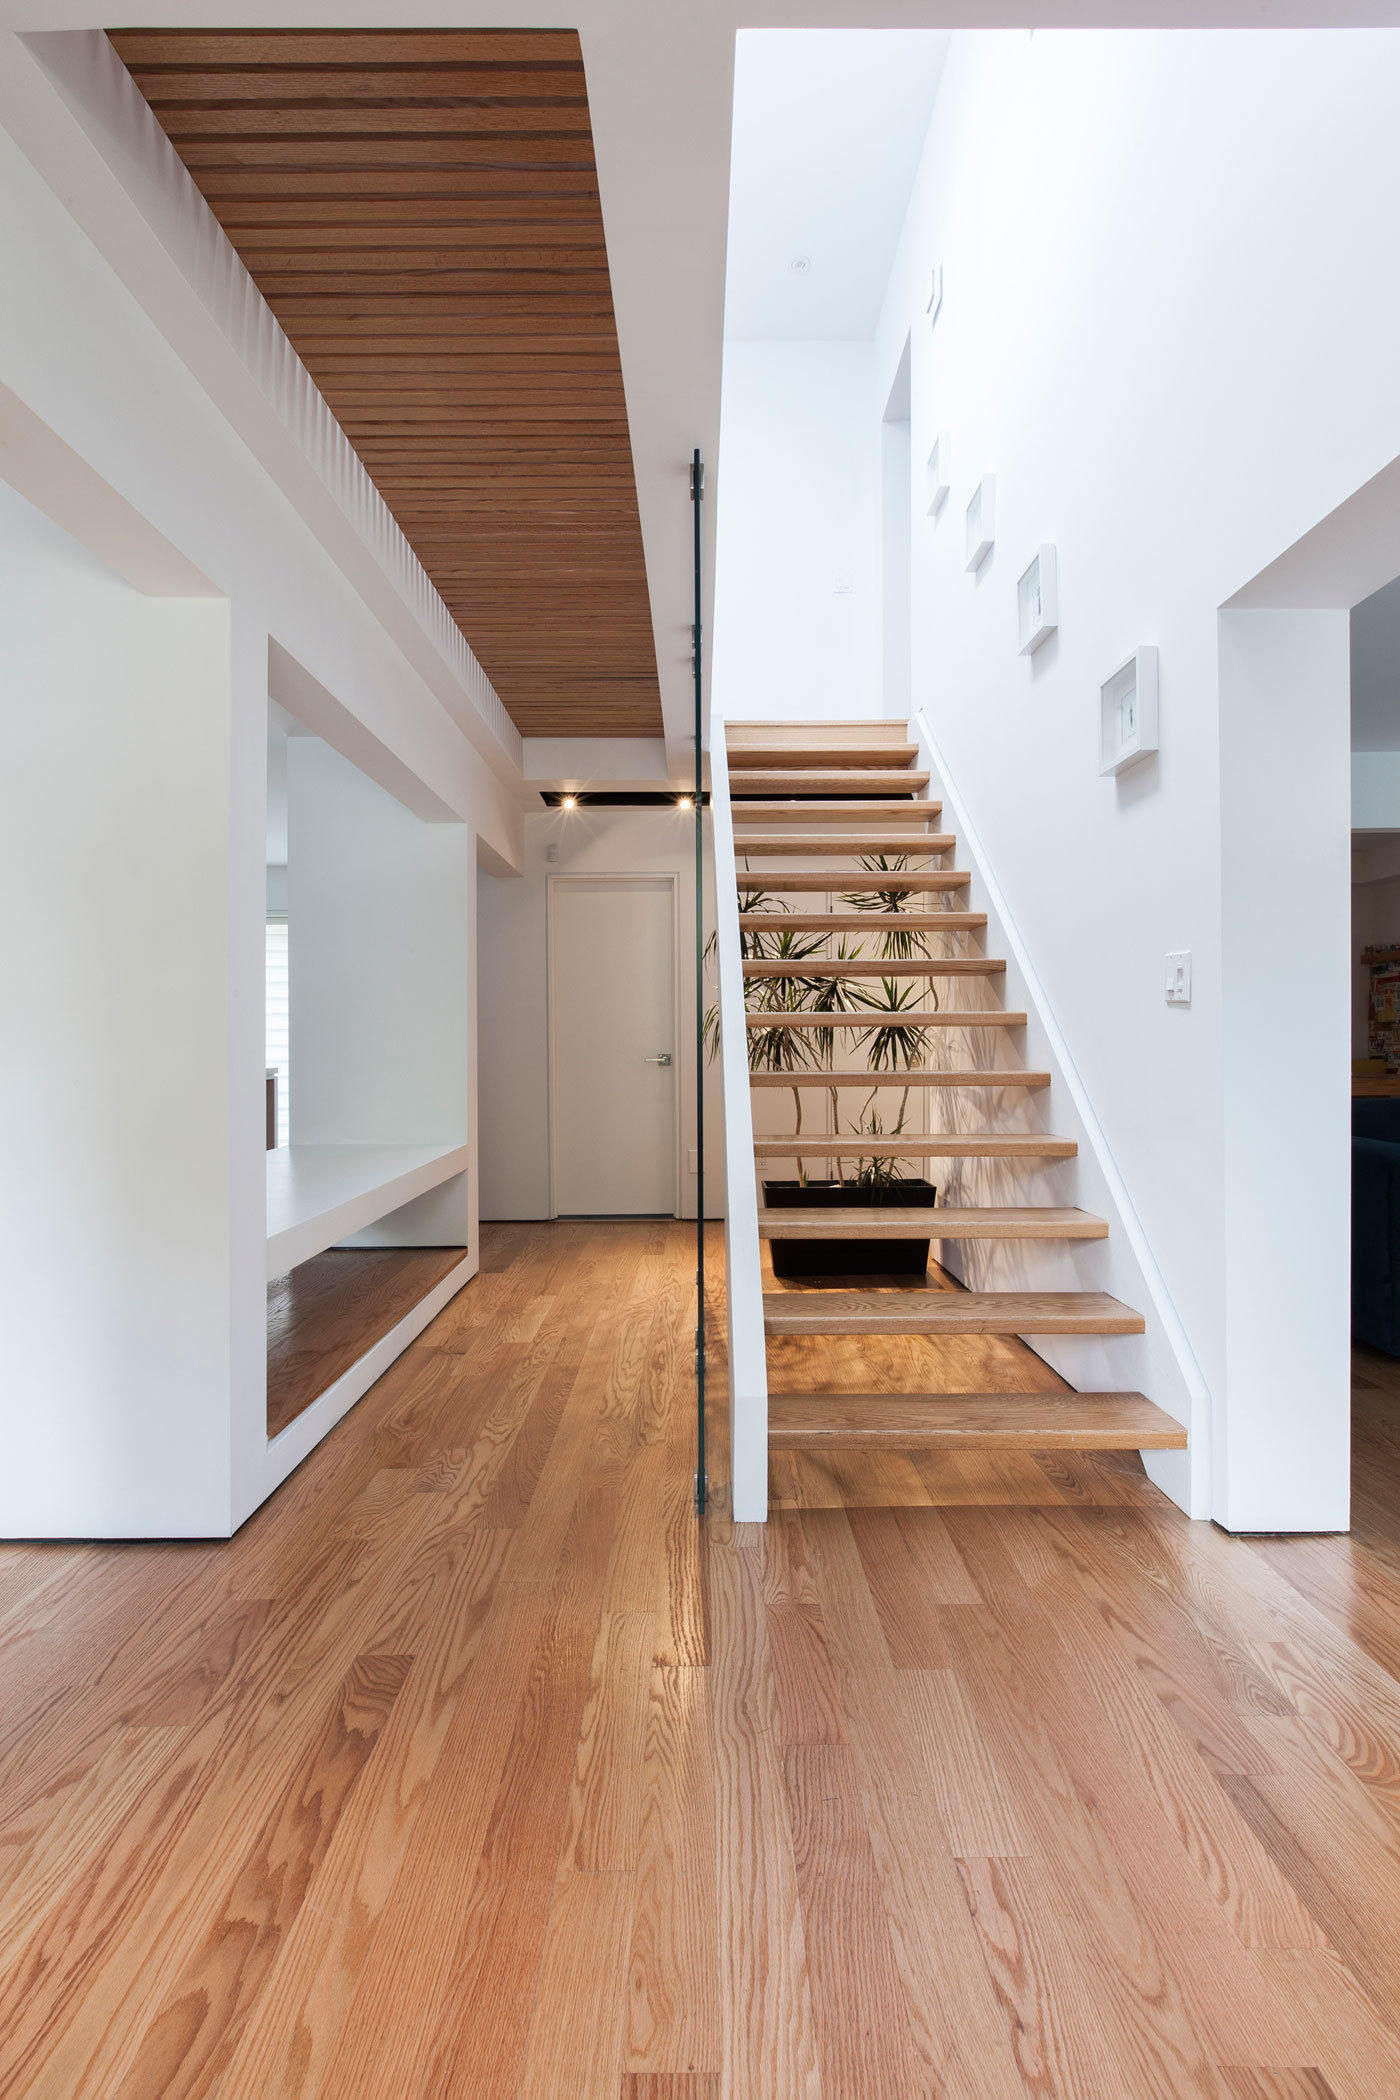 Foyer Minimalist Guide : Thorax house a minimalist two storey wood structure home